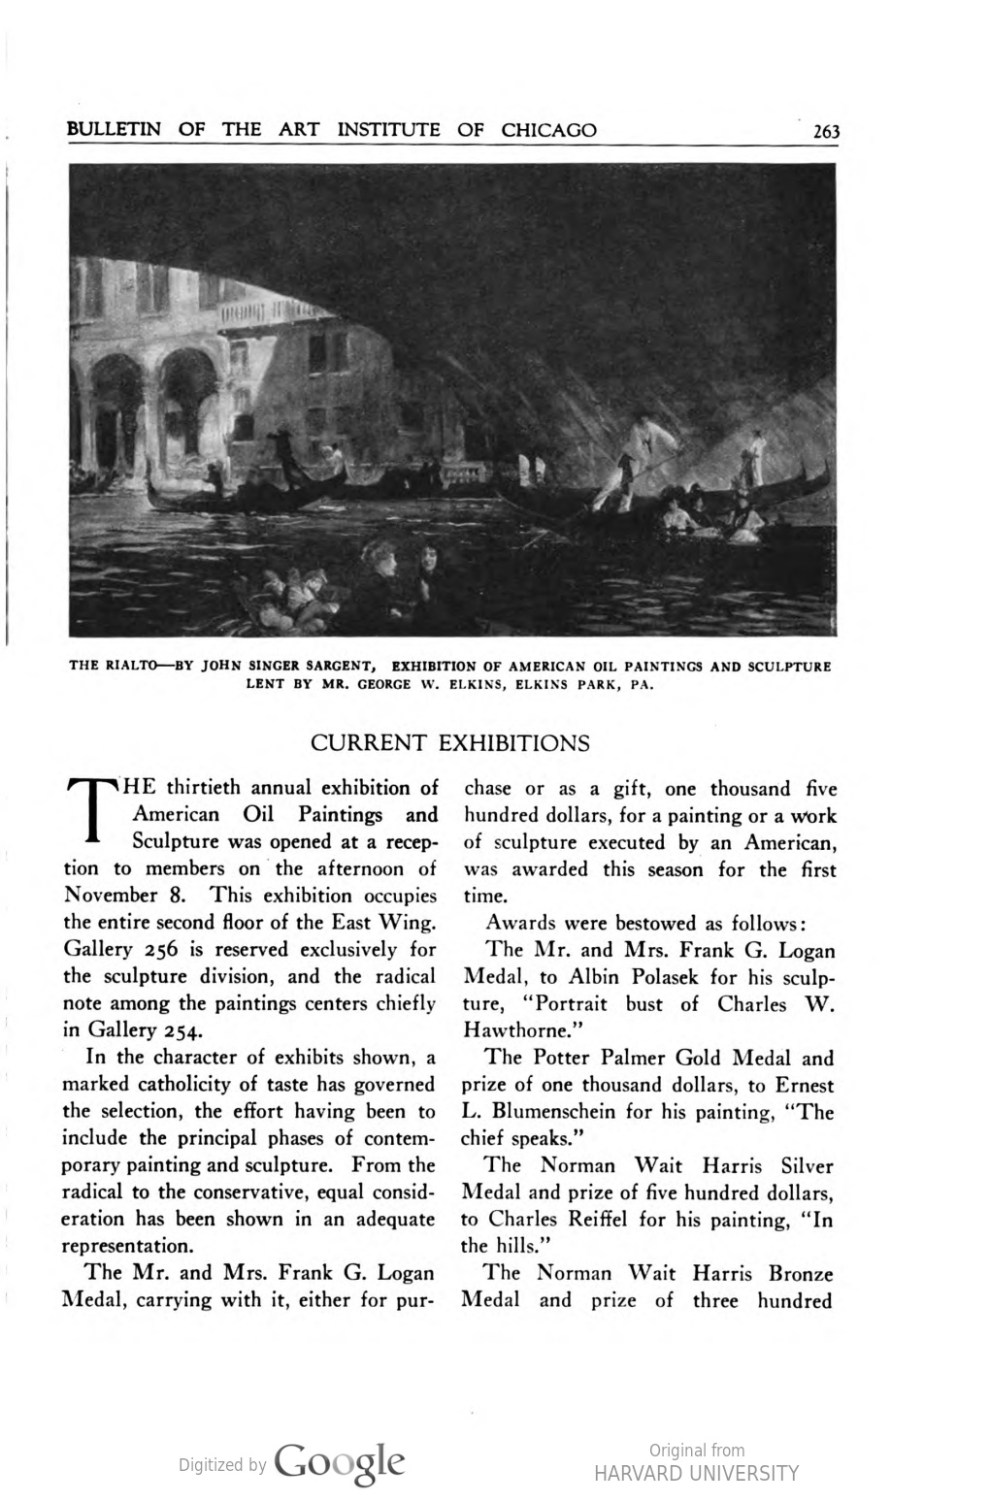 """Bulletin of the Art Institute of Chicago, Chicago, IL, """"Current Exhibitions"""", December, 1927, volume 11, number 8, page 263-267, not illustrated"""